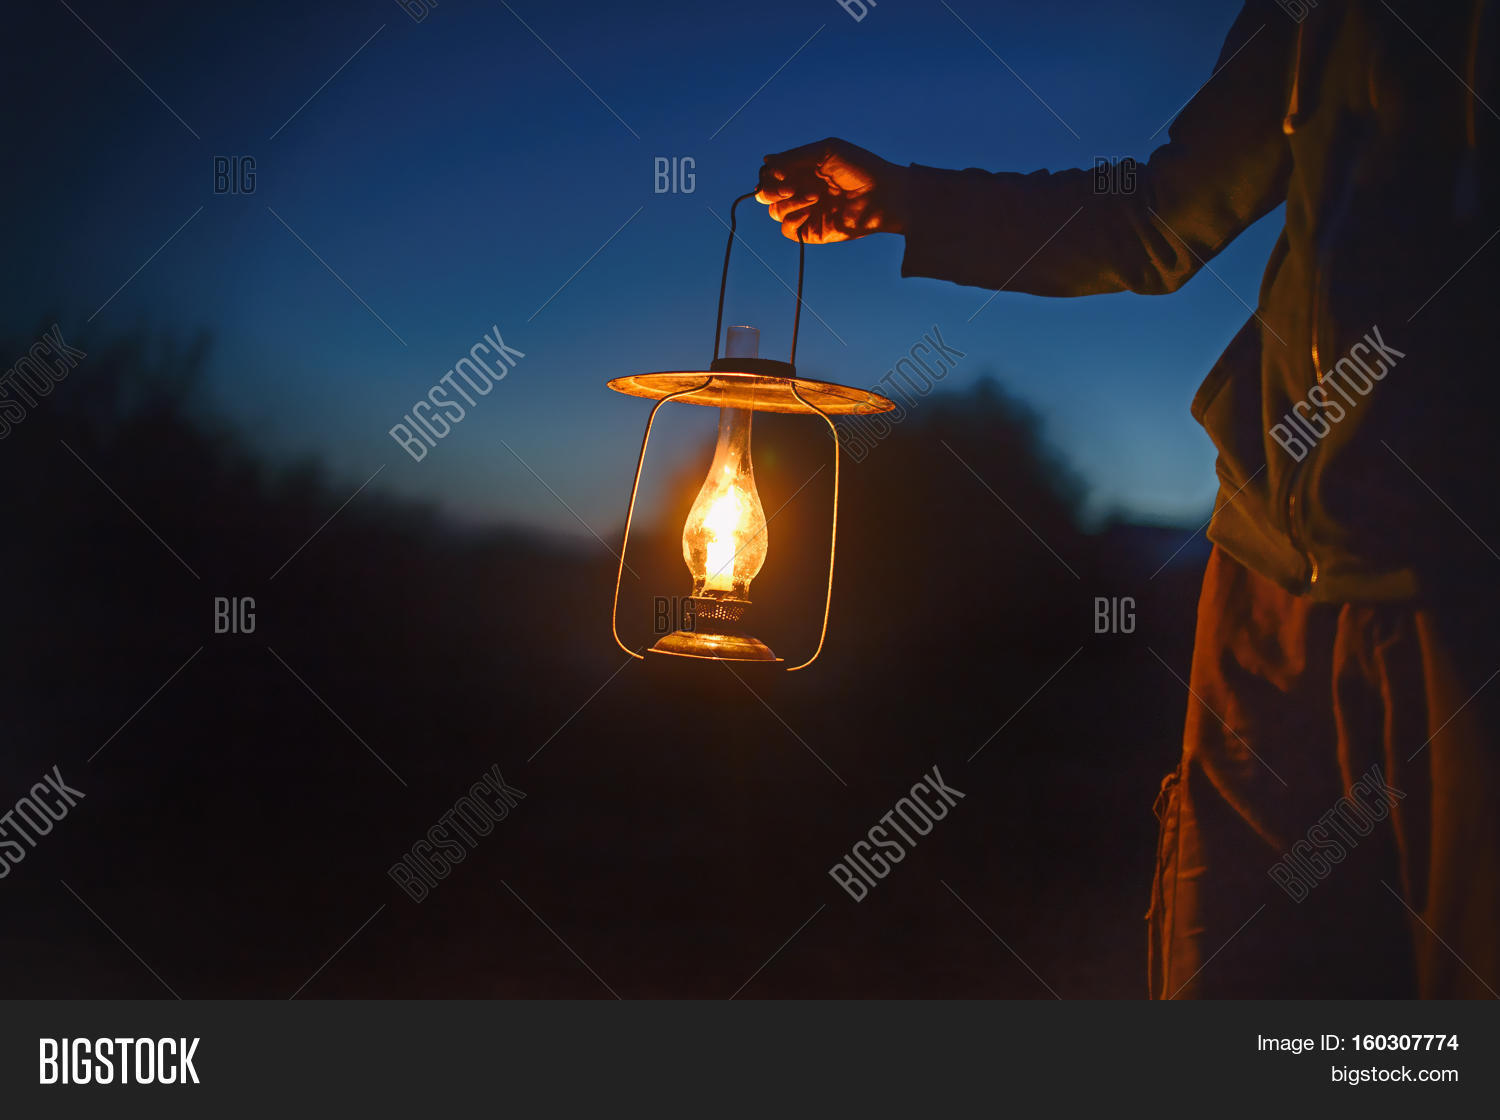 Man Holding Old Lamp Candle Image  for Holding Candle In The Dark  34eri